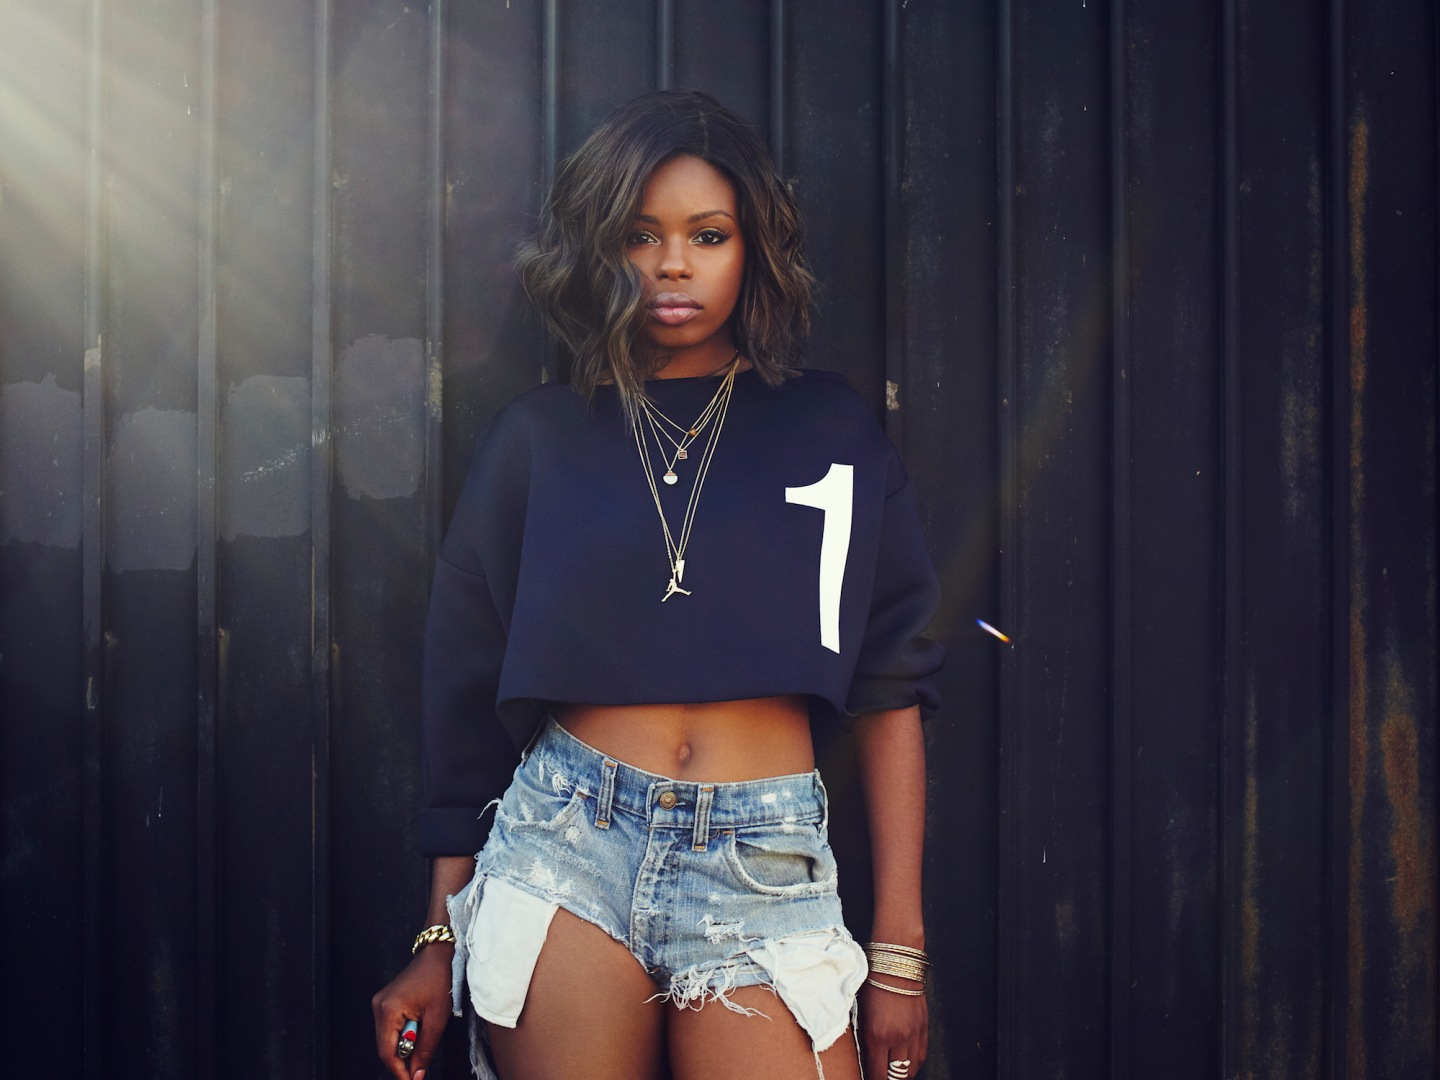 Dreezy On <i>No Hard Feelings</i> And How She Learned To Value Herself